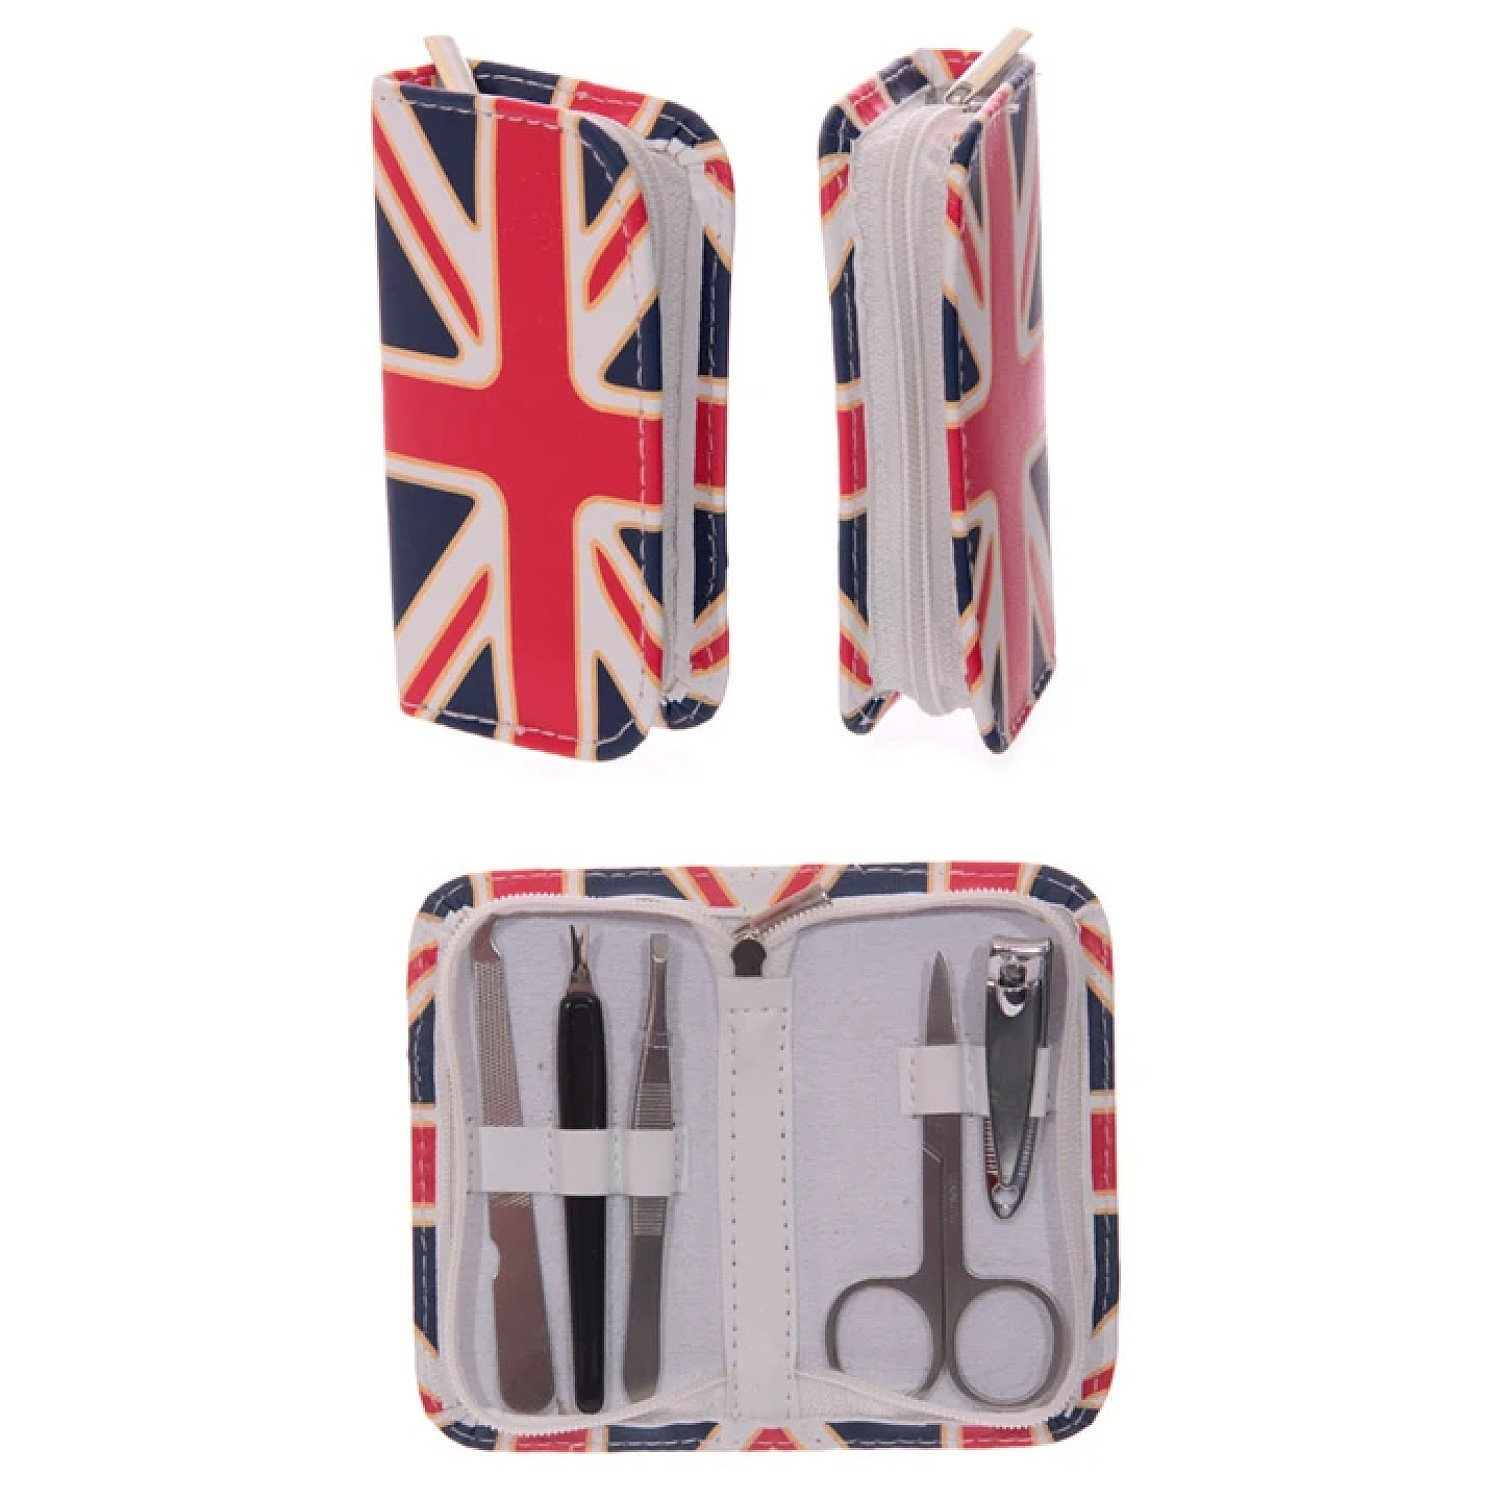 Fun Manicure Set in Union Flag Holder £8.99 Free Postage